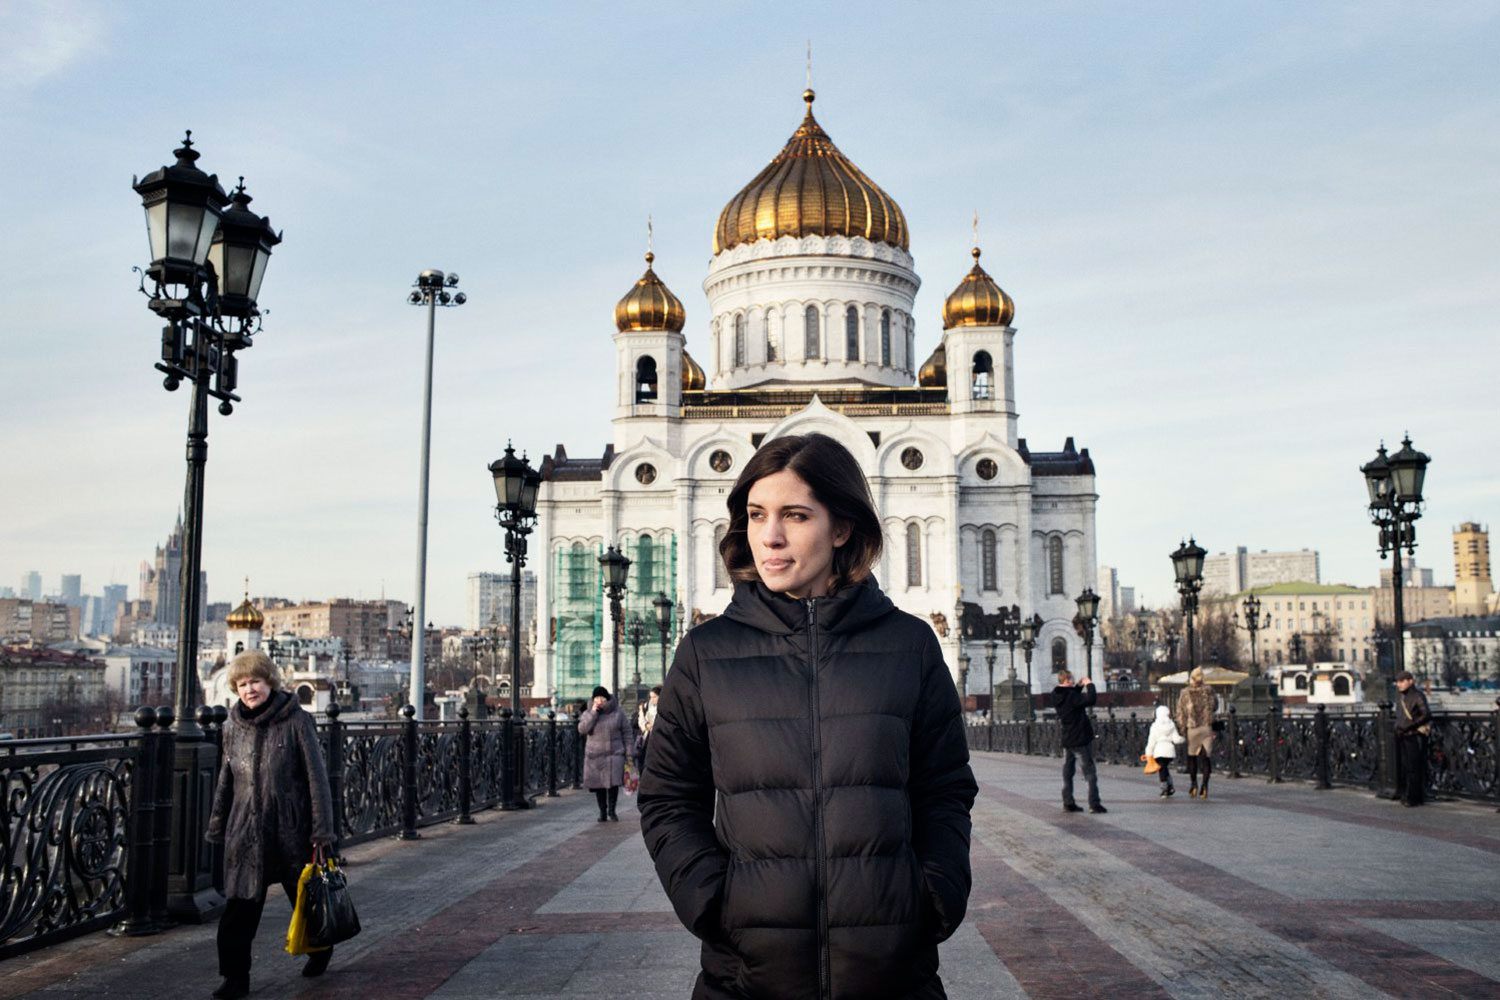 """Nadezhda Tolokonnikova  in front of Christ the Saviour Cathedral in Moscow. Their two-year sentence, on charges of """"hooliganism motivated by religious hatred"""" for performing a protest song in this cathedral, was commuted under an amnesty from the Kremlin."""